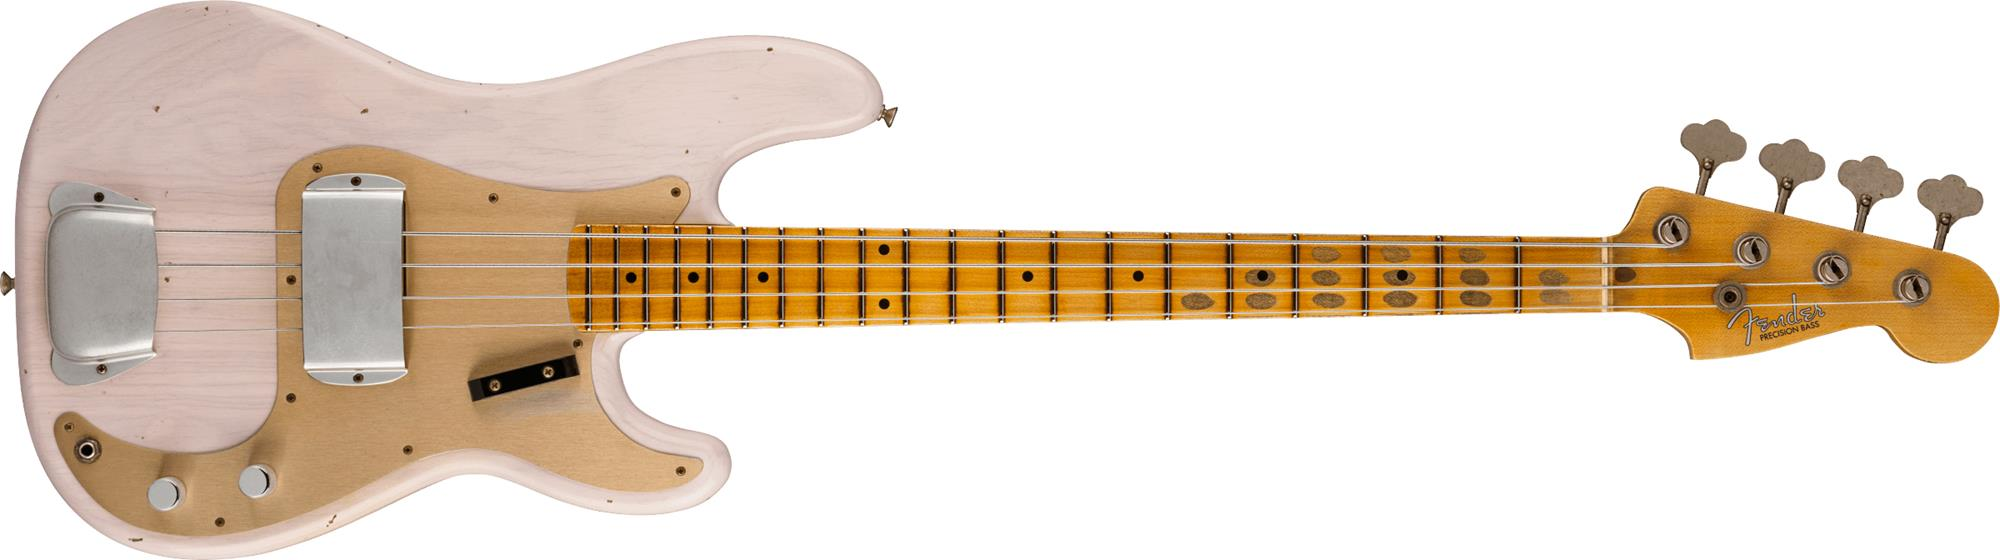 FENDER-1959-Precision-Bass-Journeyman-Relic-Maple-Fingerboard-Aged-White-Blonde-sku-571005375